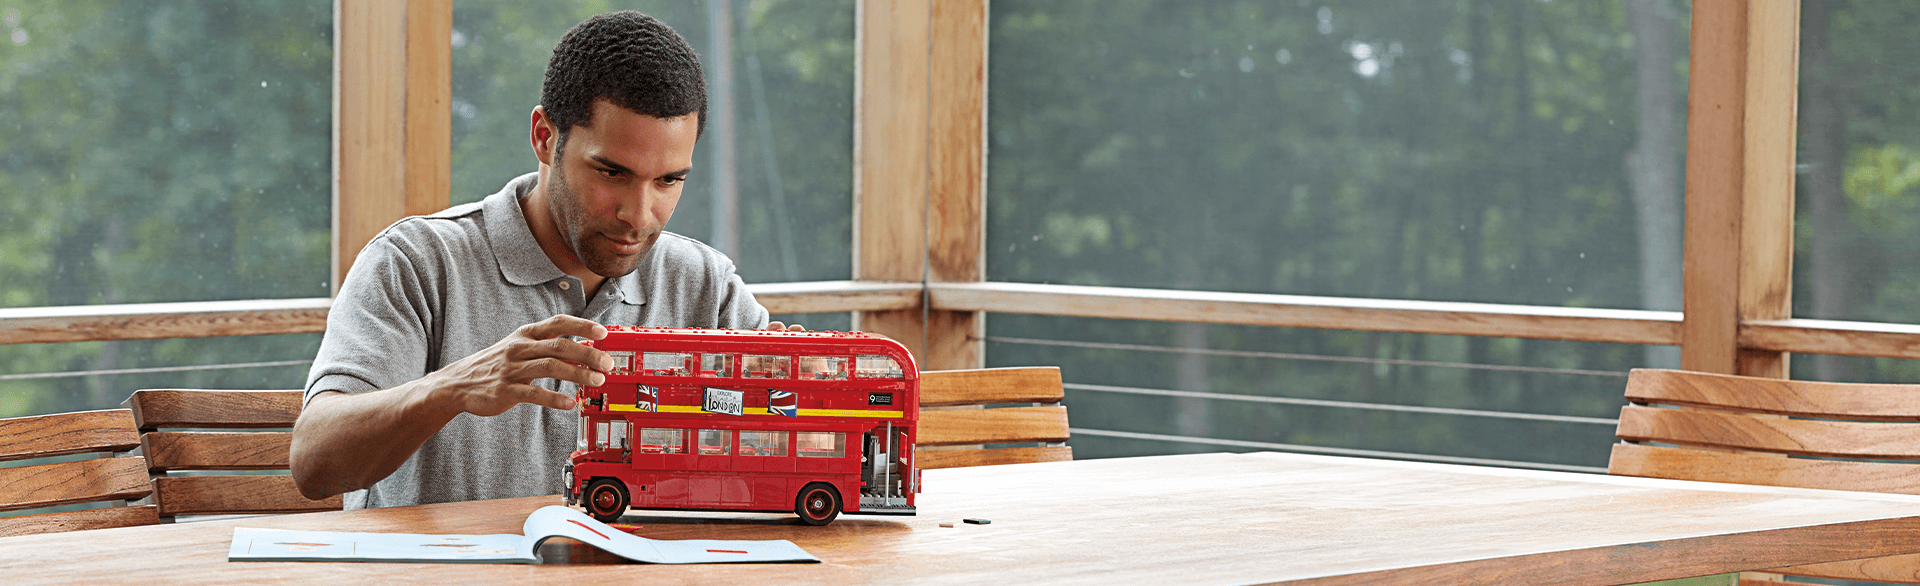 LEGO Creator Expert: London Bus